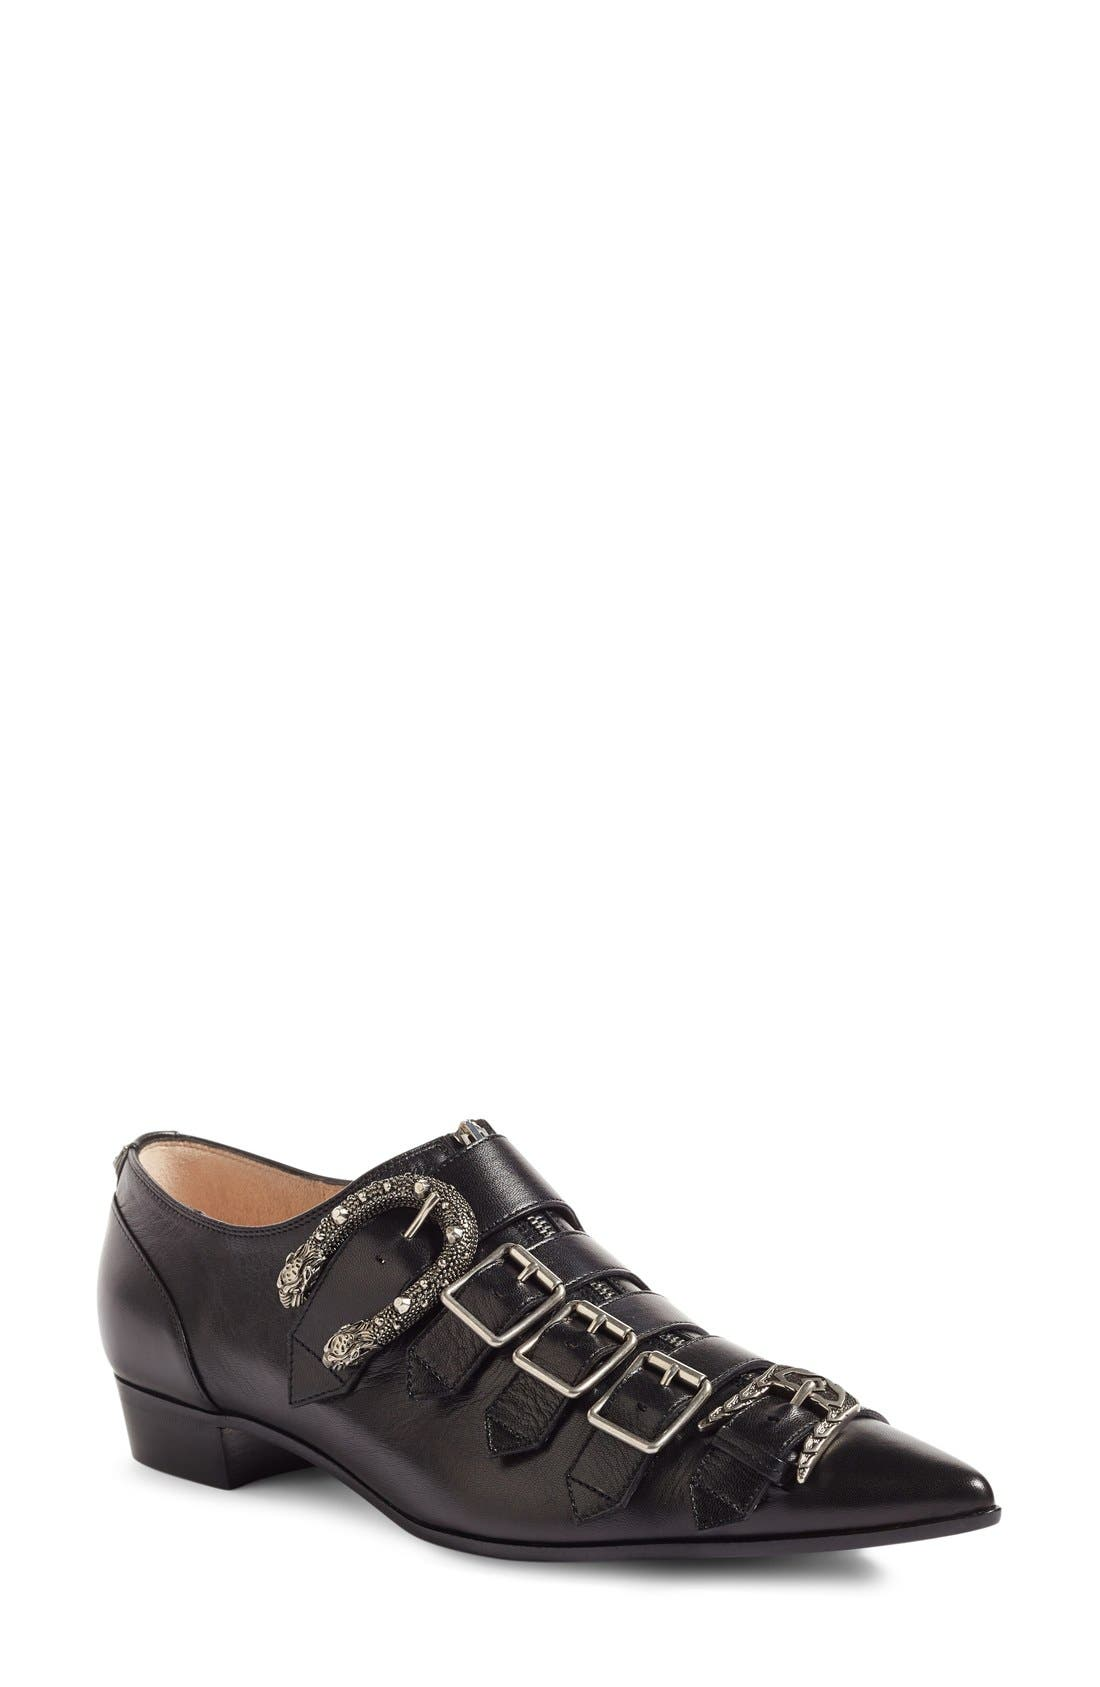 Susan Buckle Pointy Toe Loafer,                         Main,                         color, Black Leather